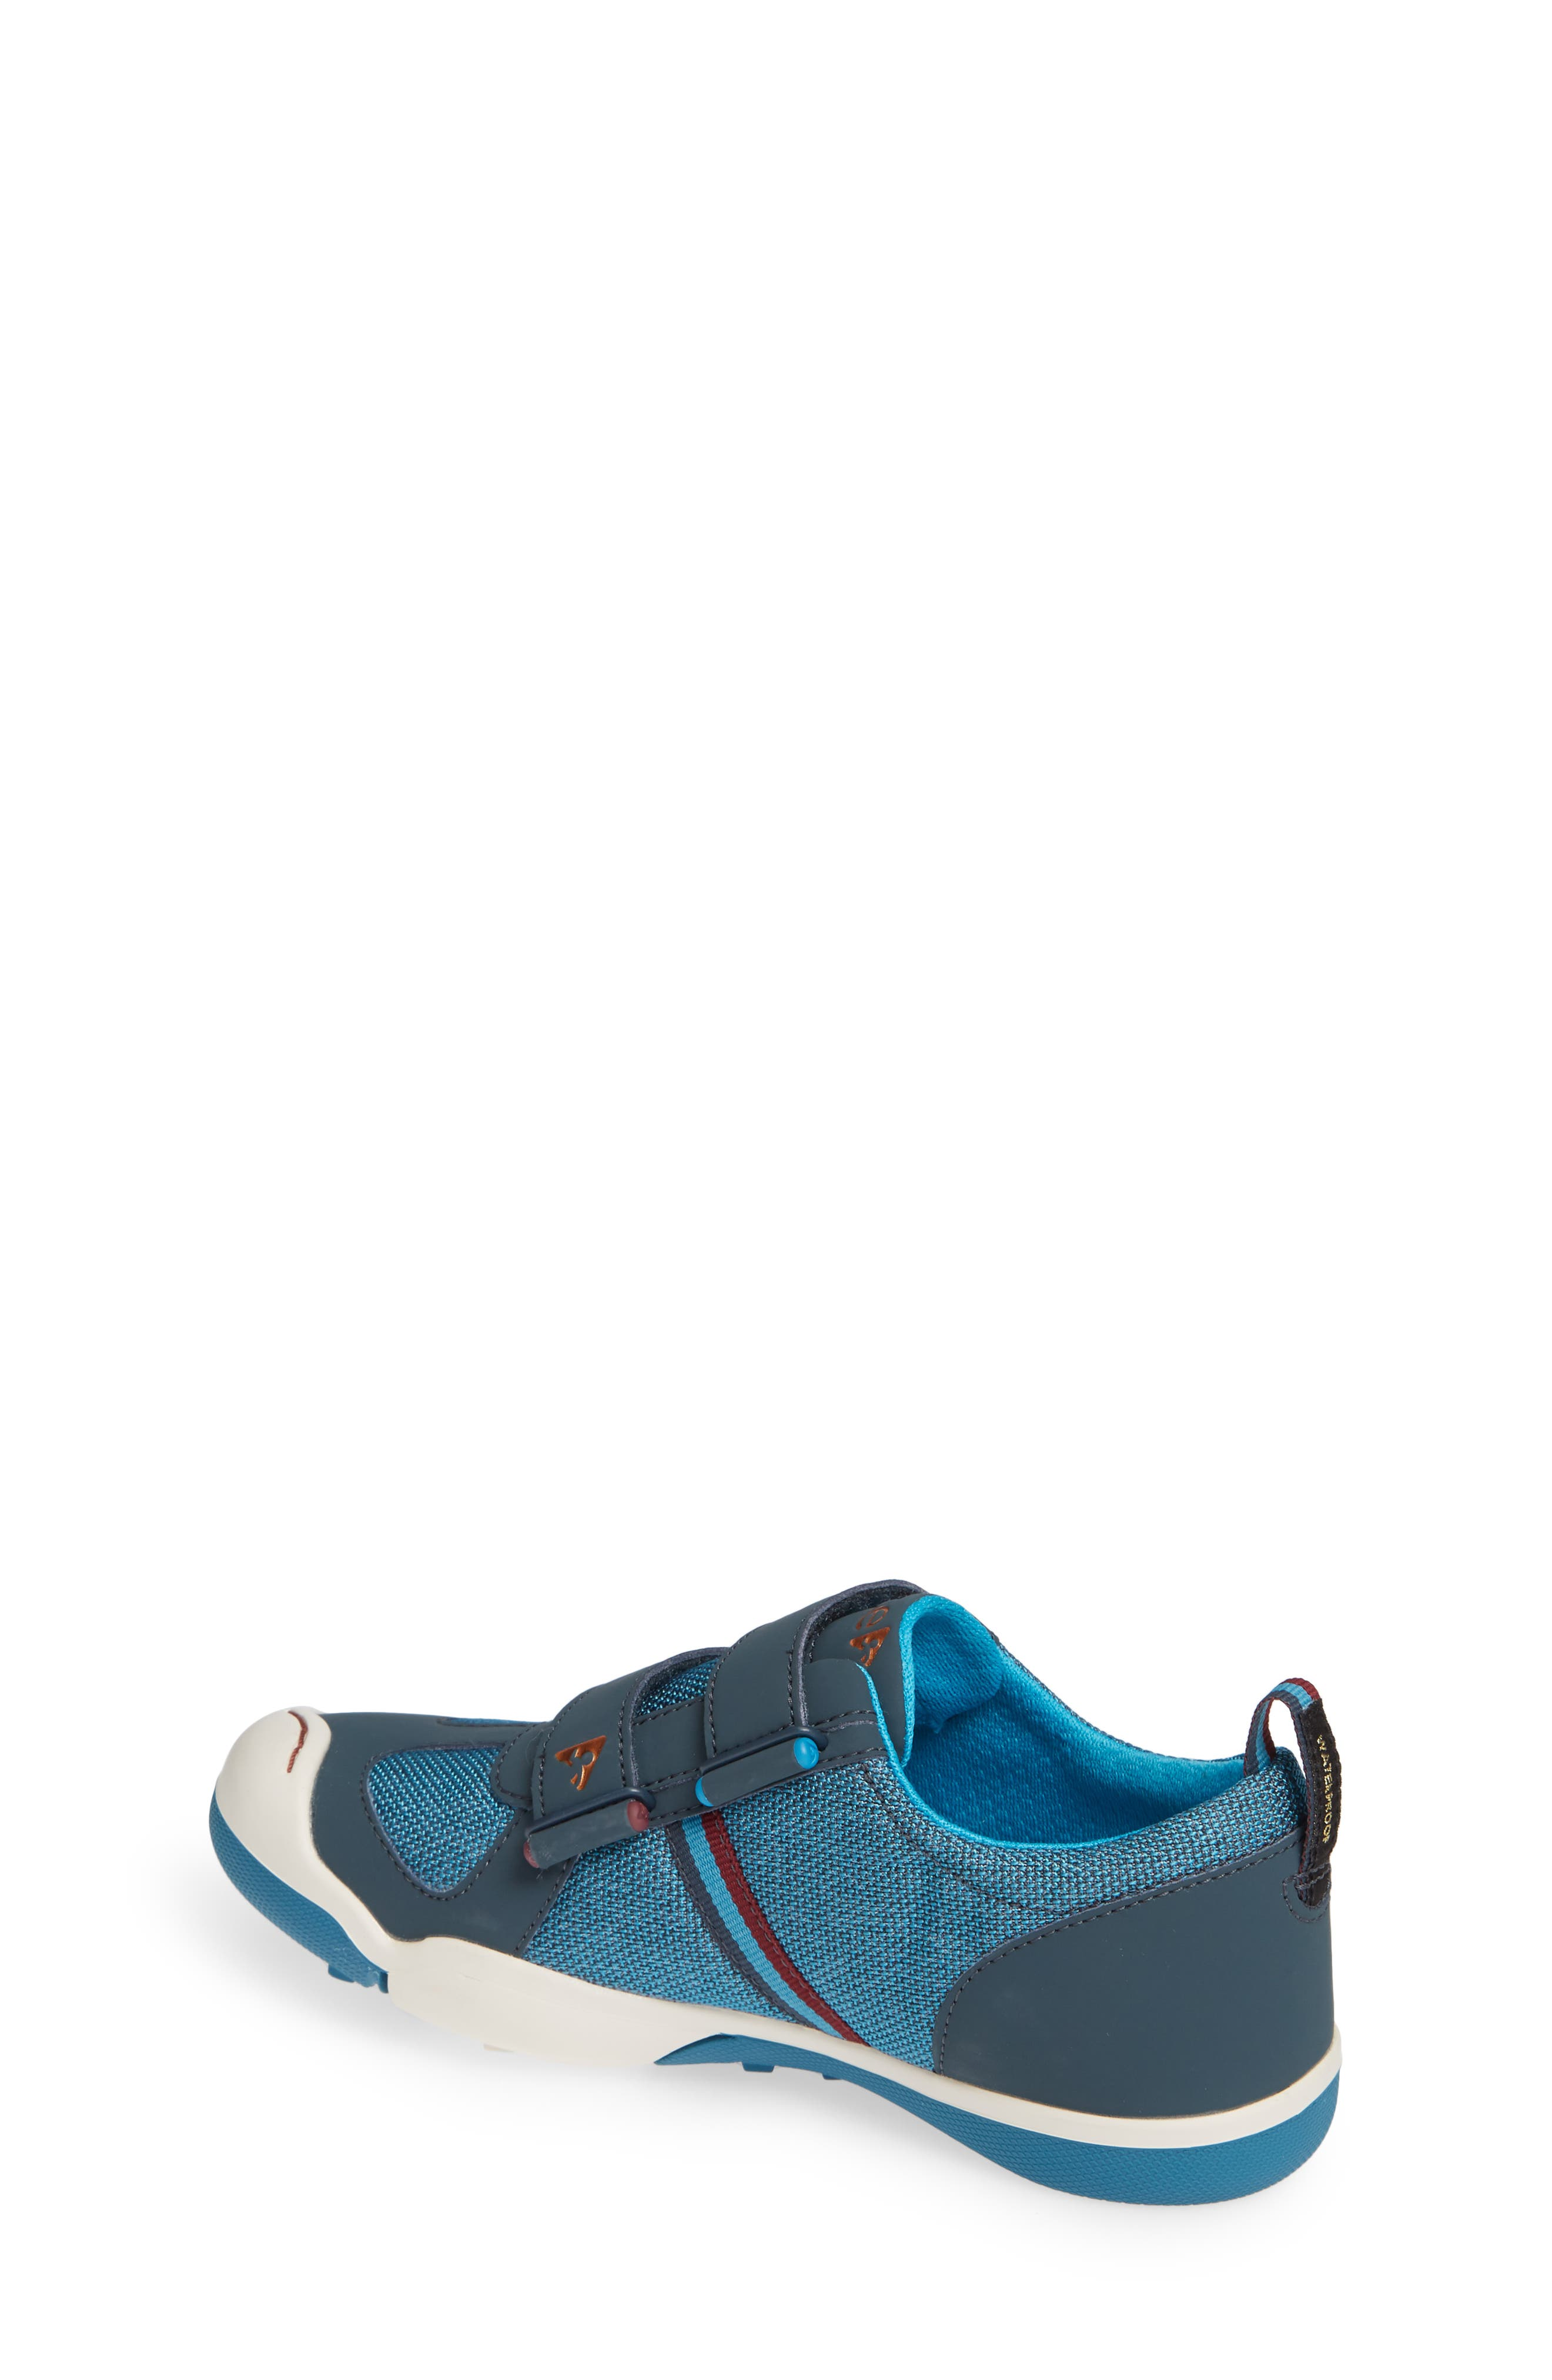 Charlie Customizable Sneaker,                             Alternate thumbnail 2, color,                             BLUE MARLIN